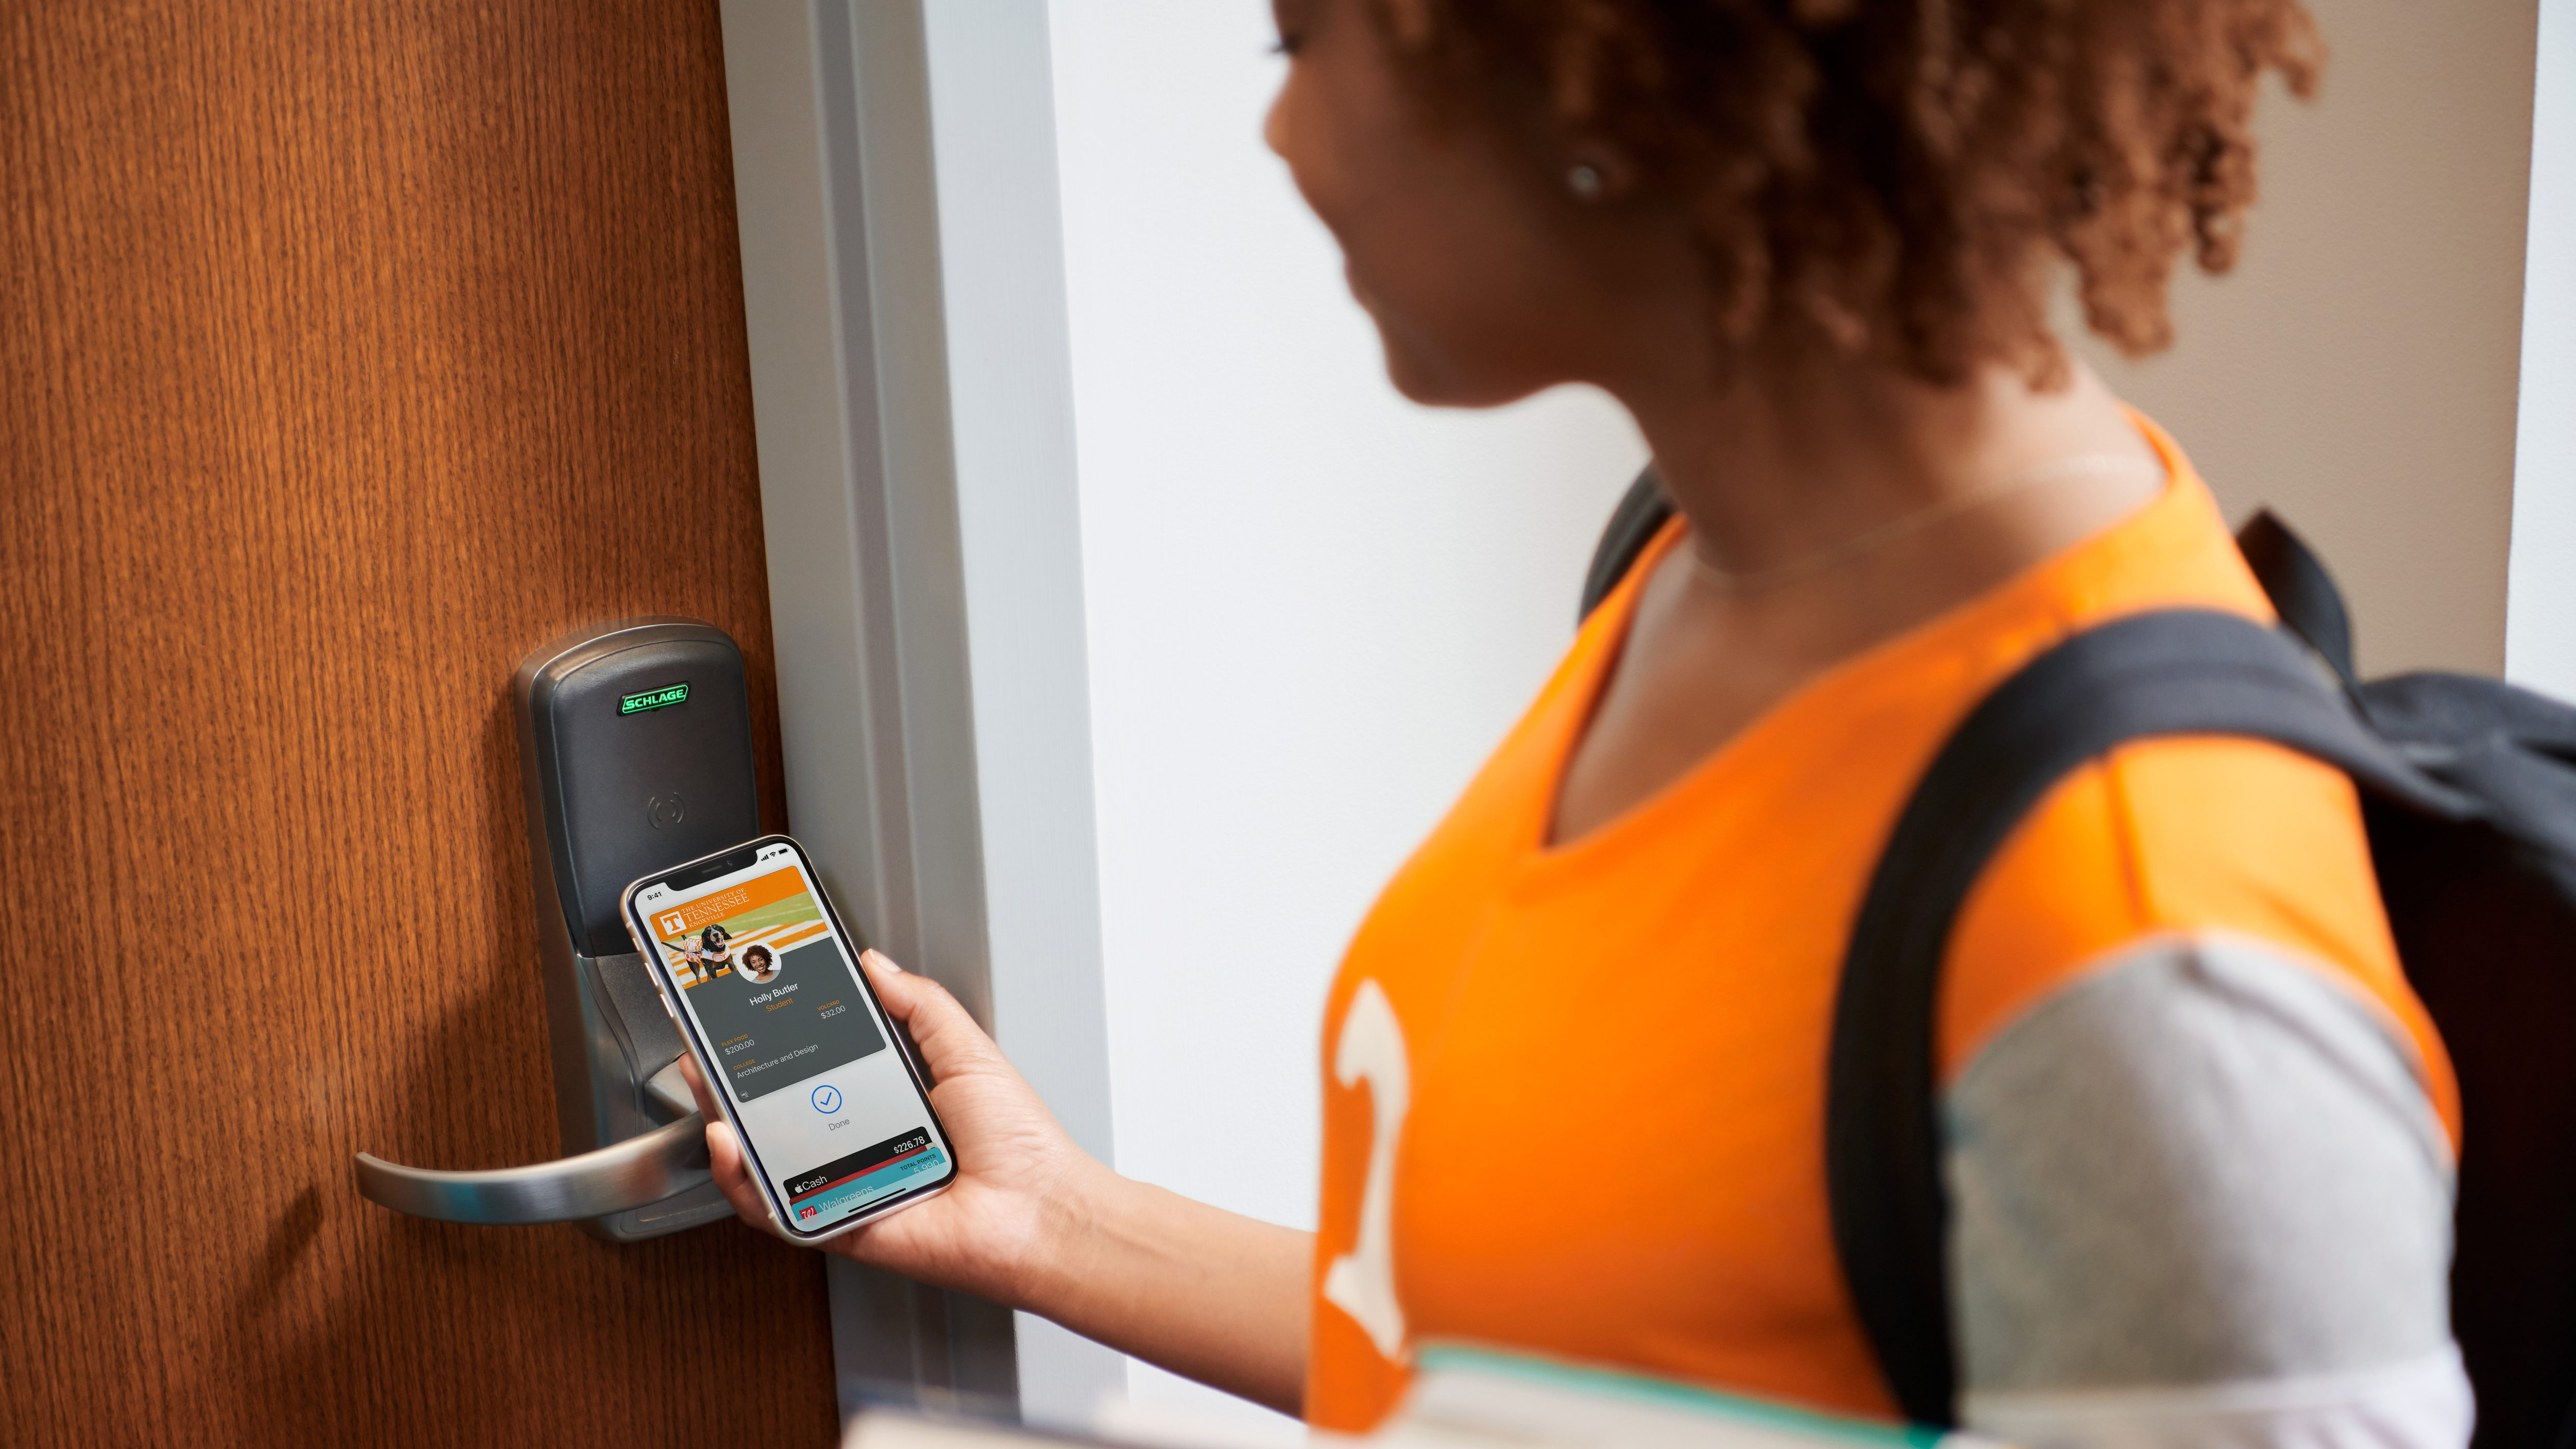 Unlocking a door with an iPhone.